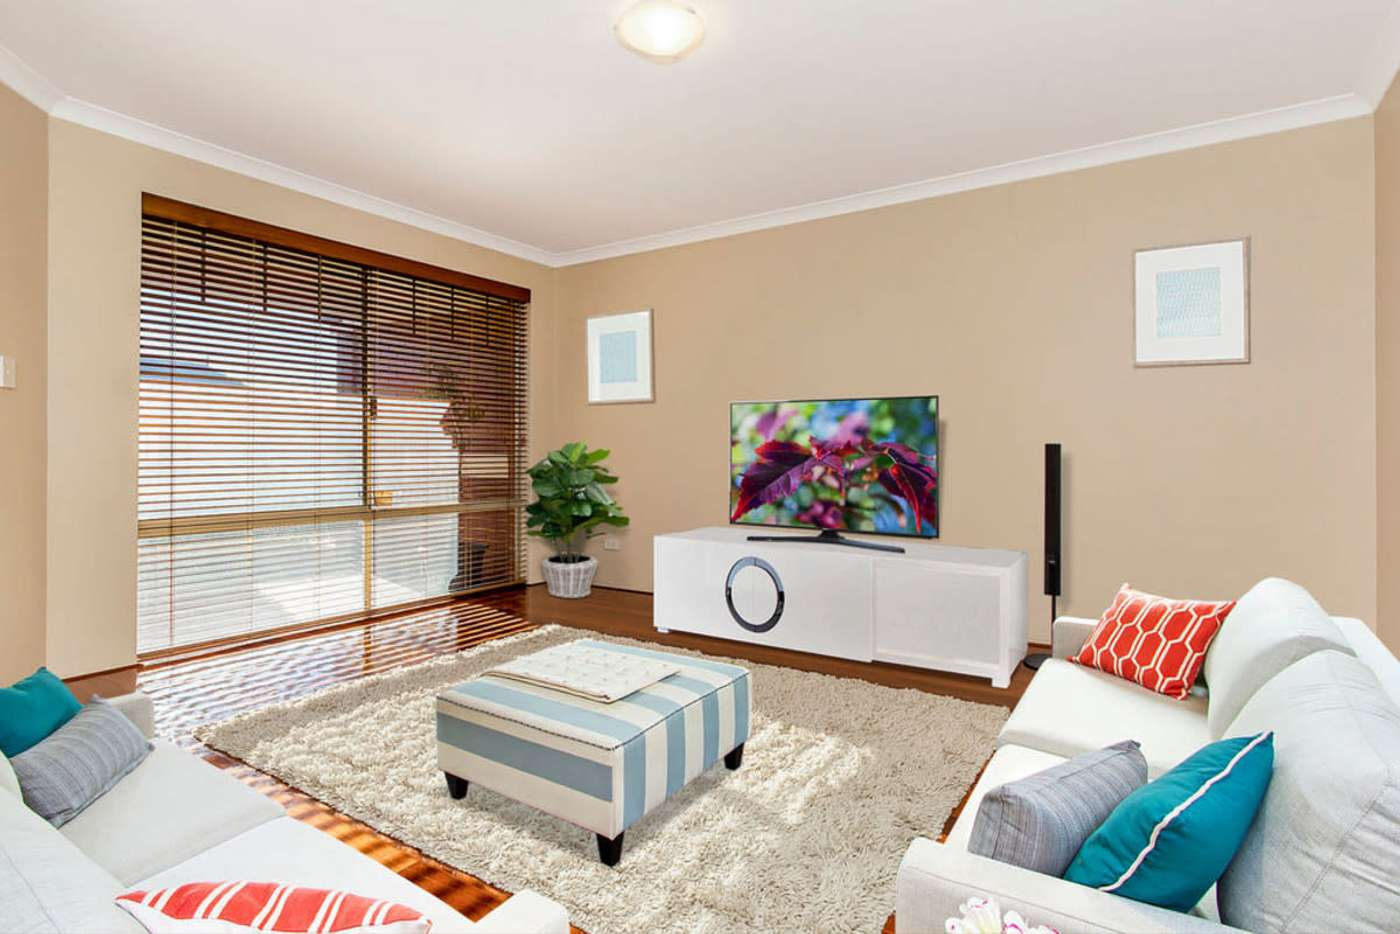 Seventh view of Homely house listing, 43 Pensacola Avenue, Caversham WA 6055